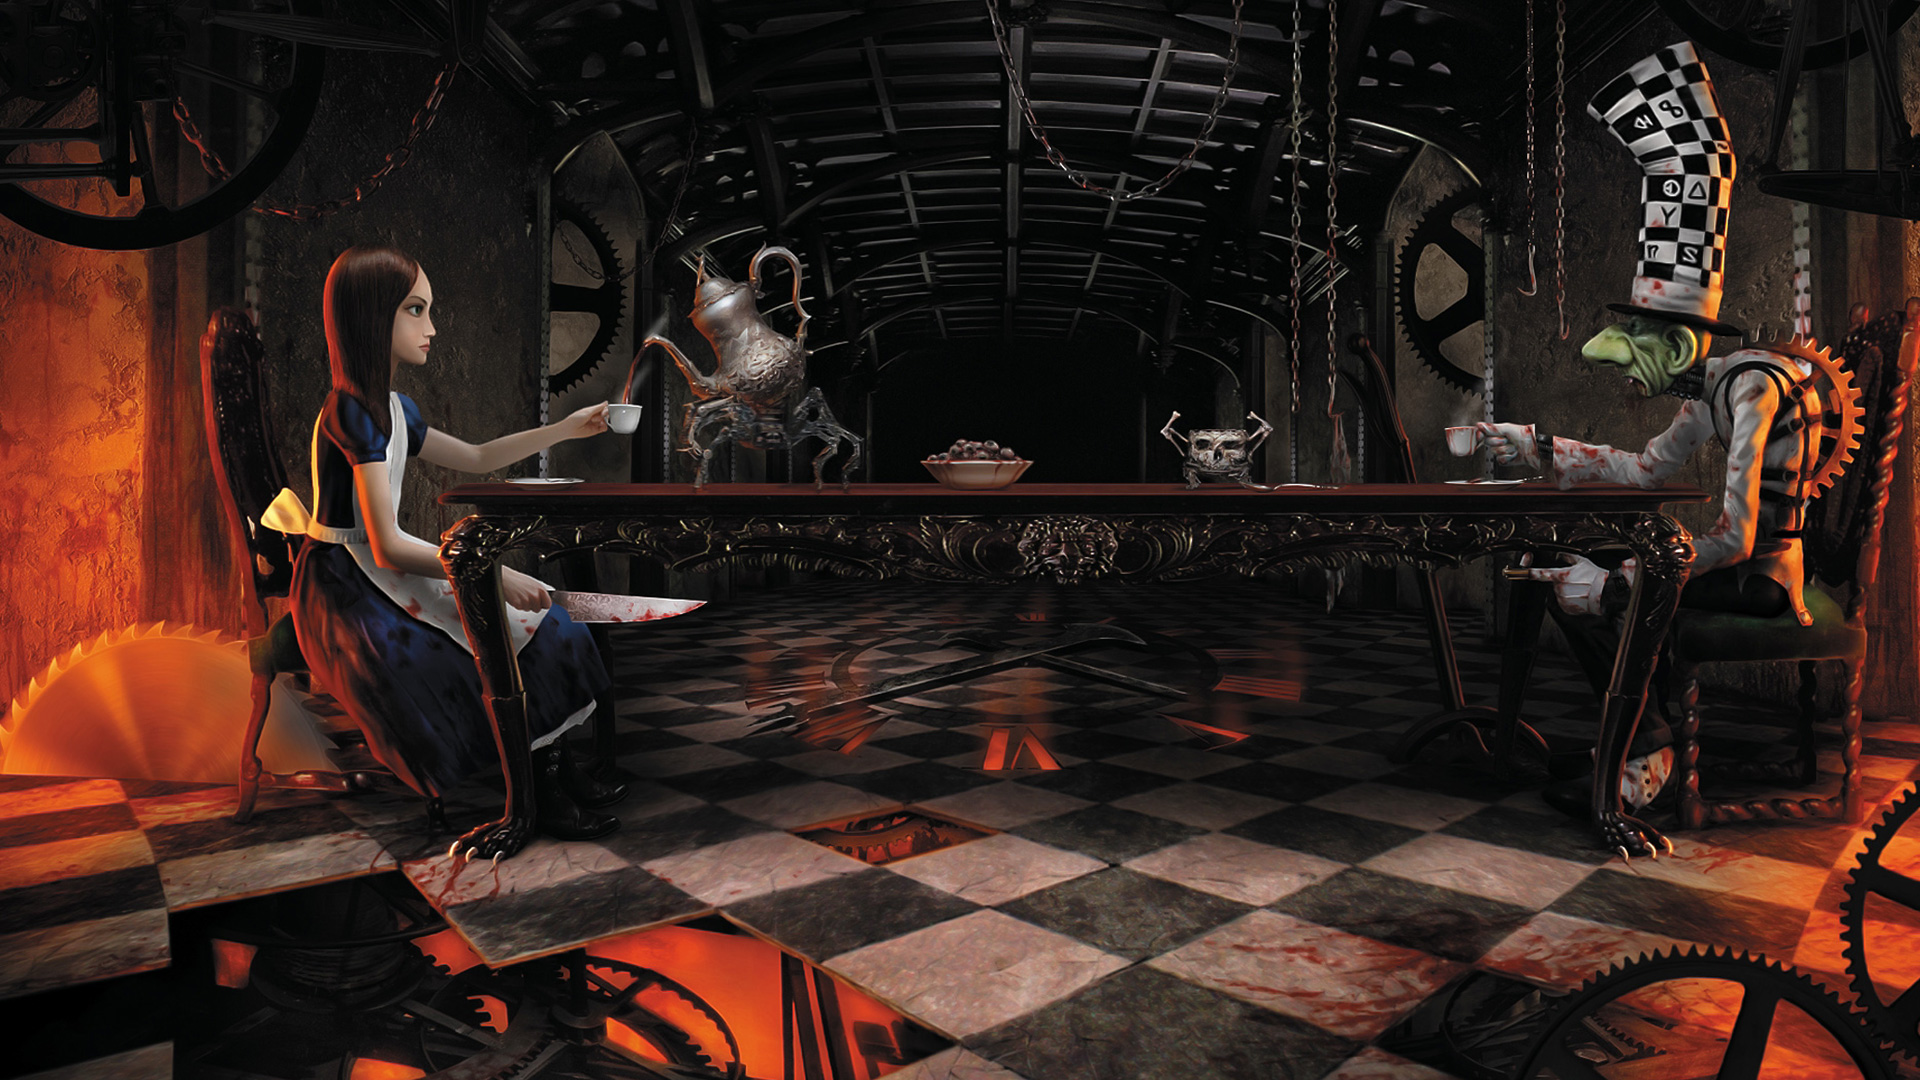 American McGees Alice wallpaper 2